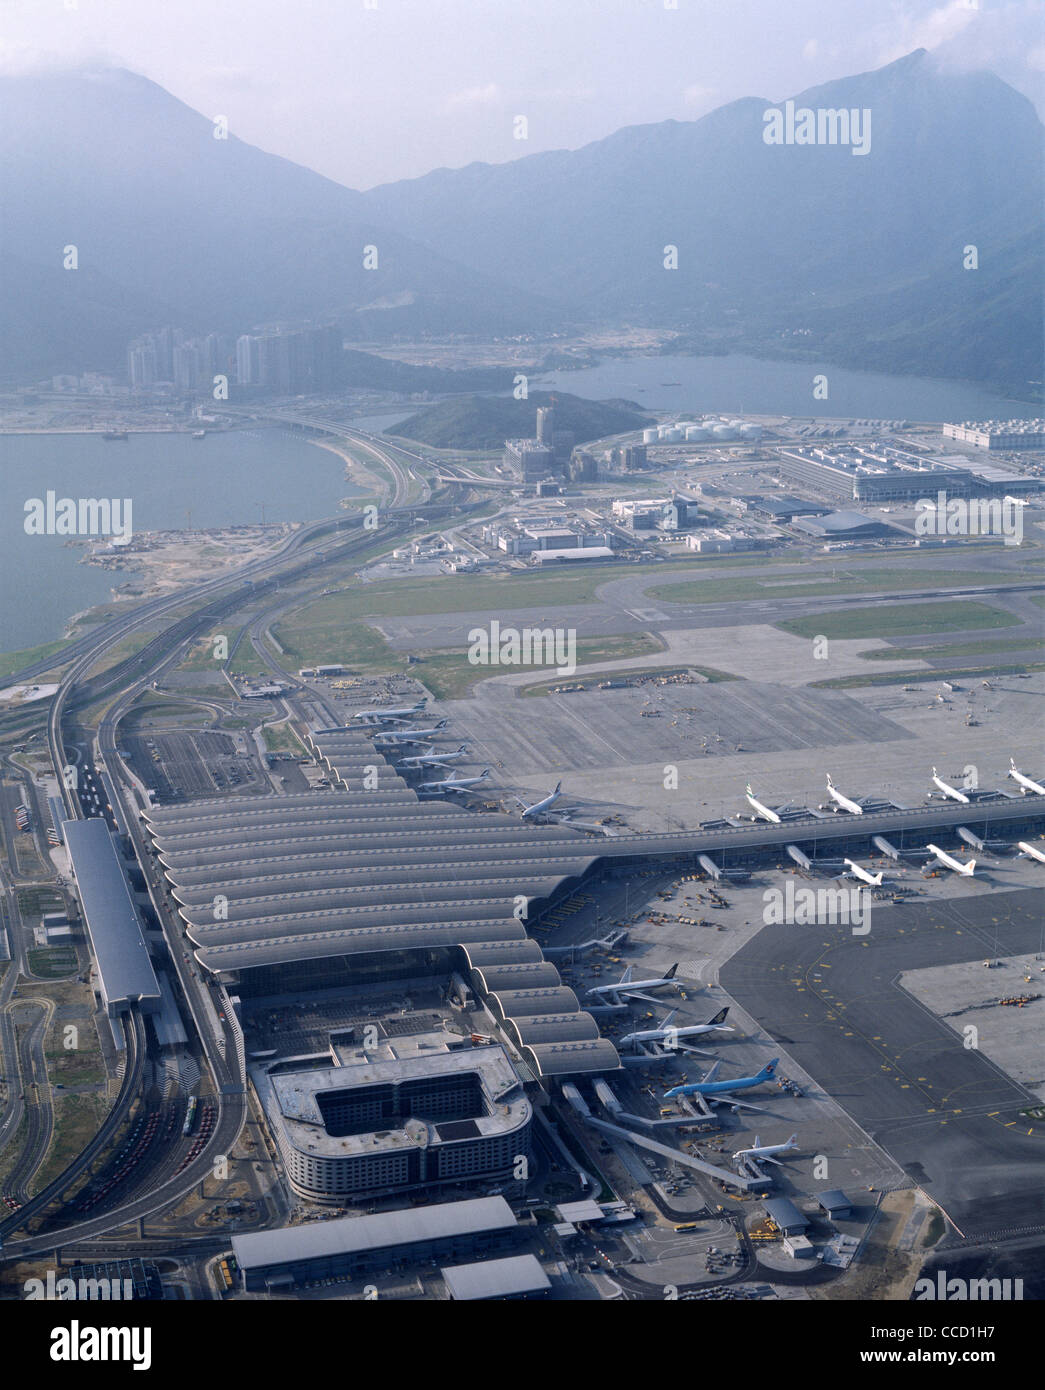 CHEK LAP KOK, HONG KONG INTERNATIONAL AIRPORT AERIAL VIEW - Stock Image